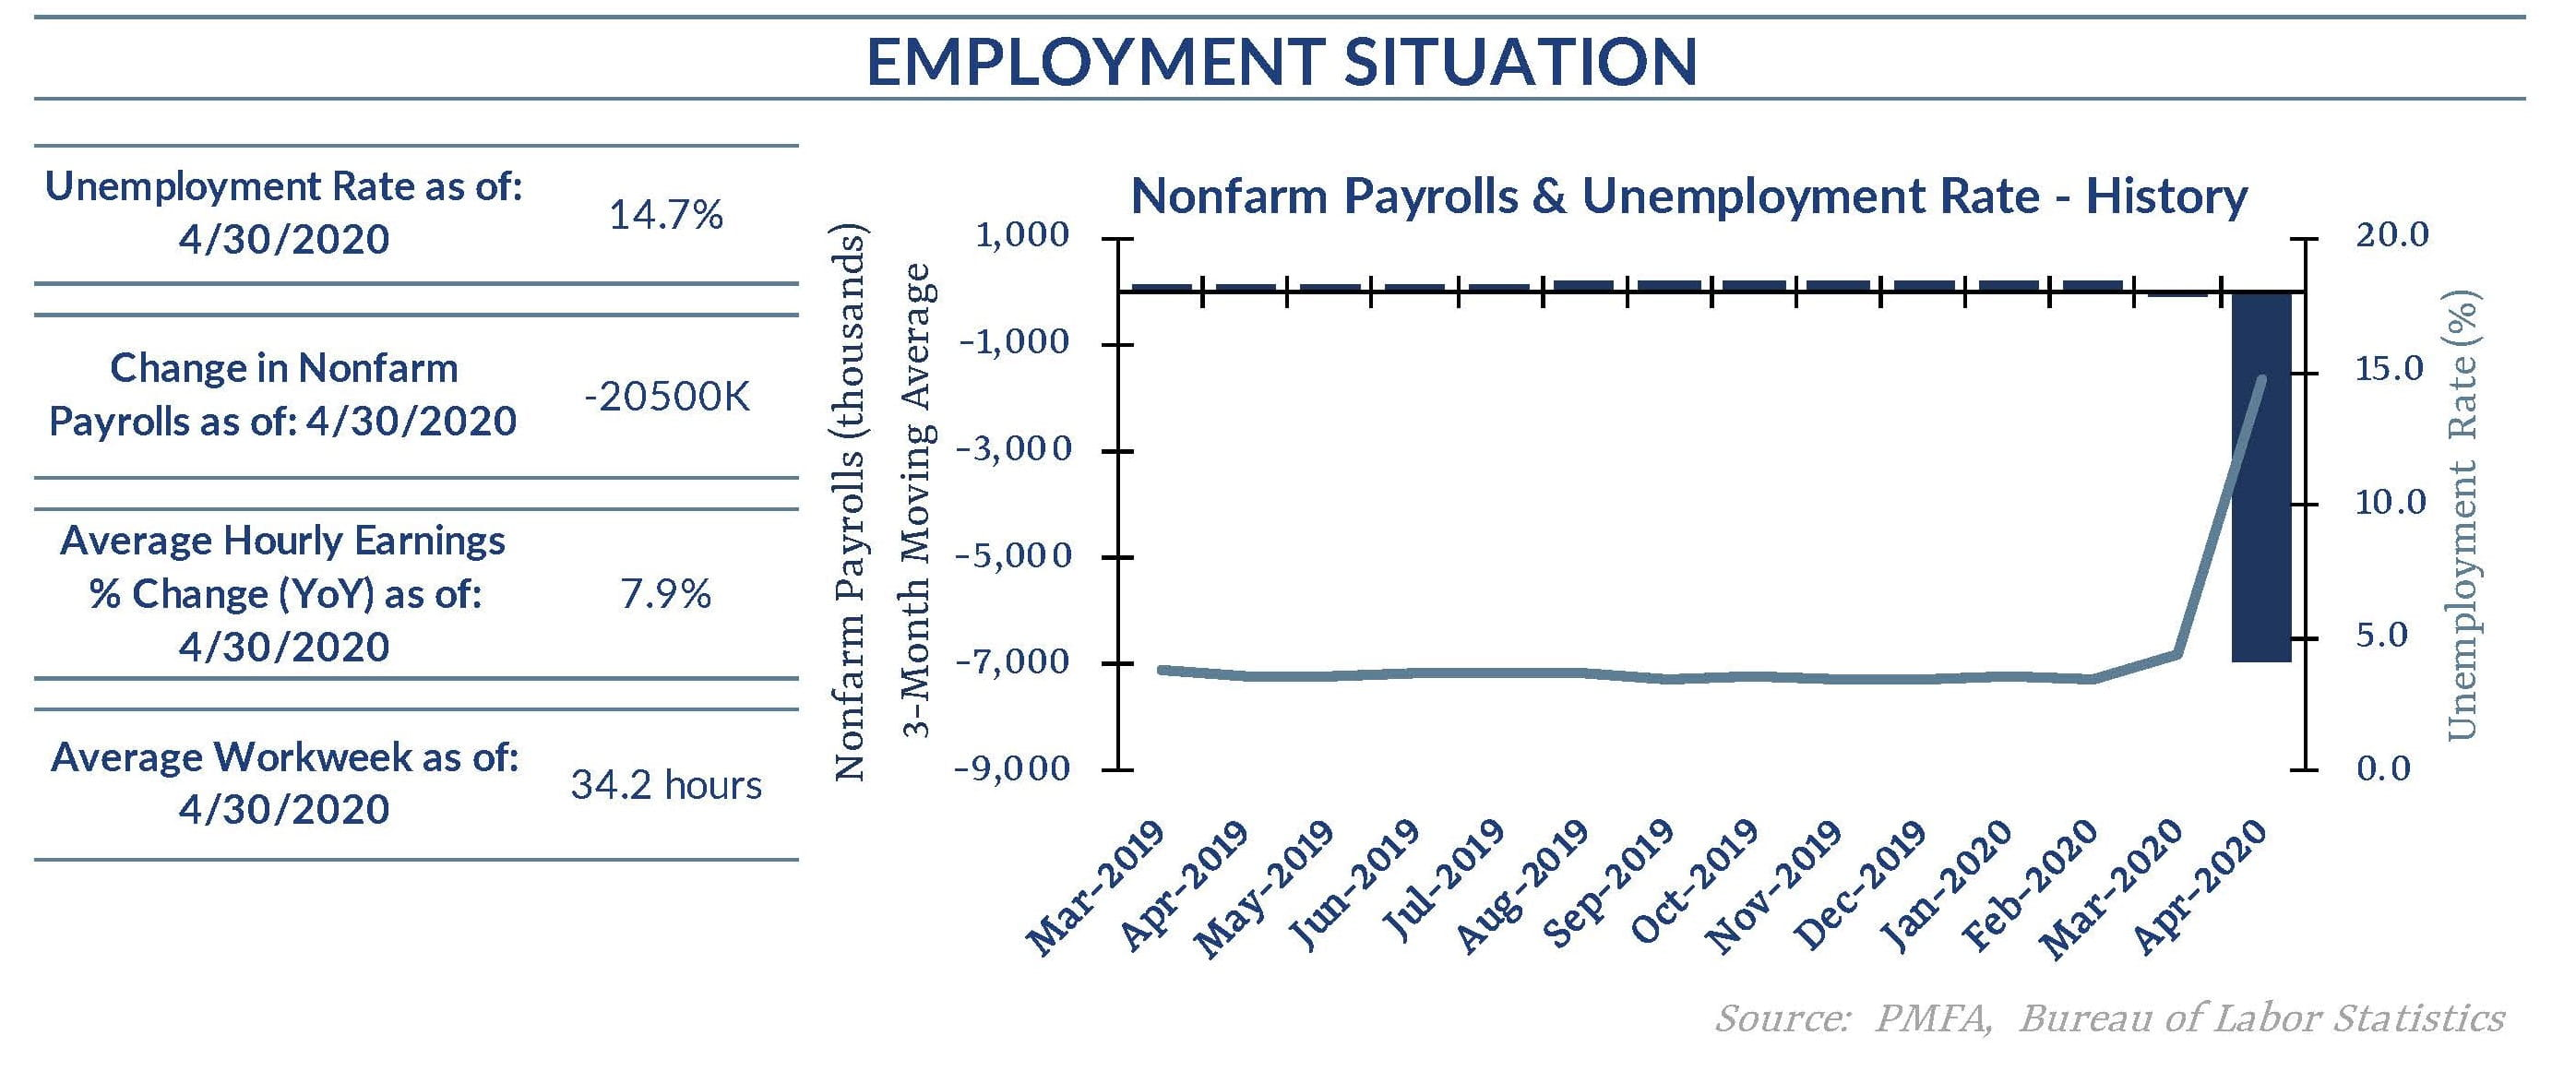 Chart for employment situation data dated May 2020